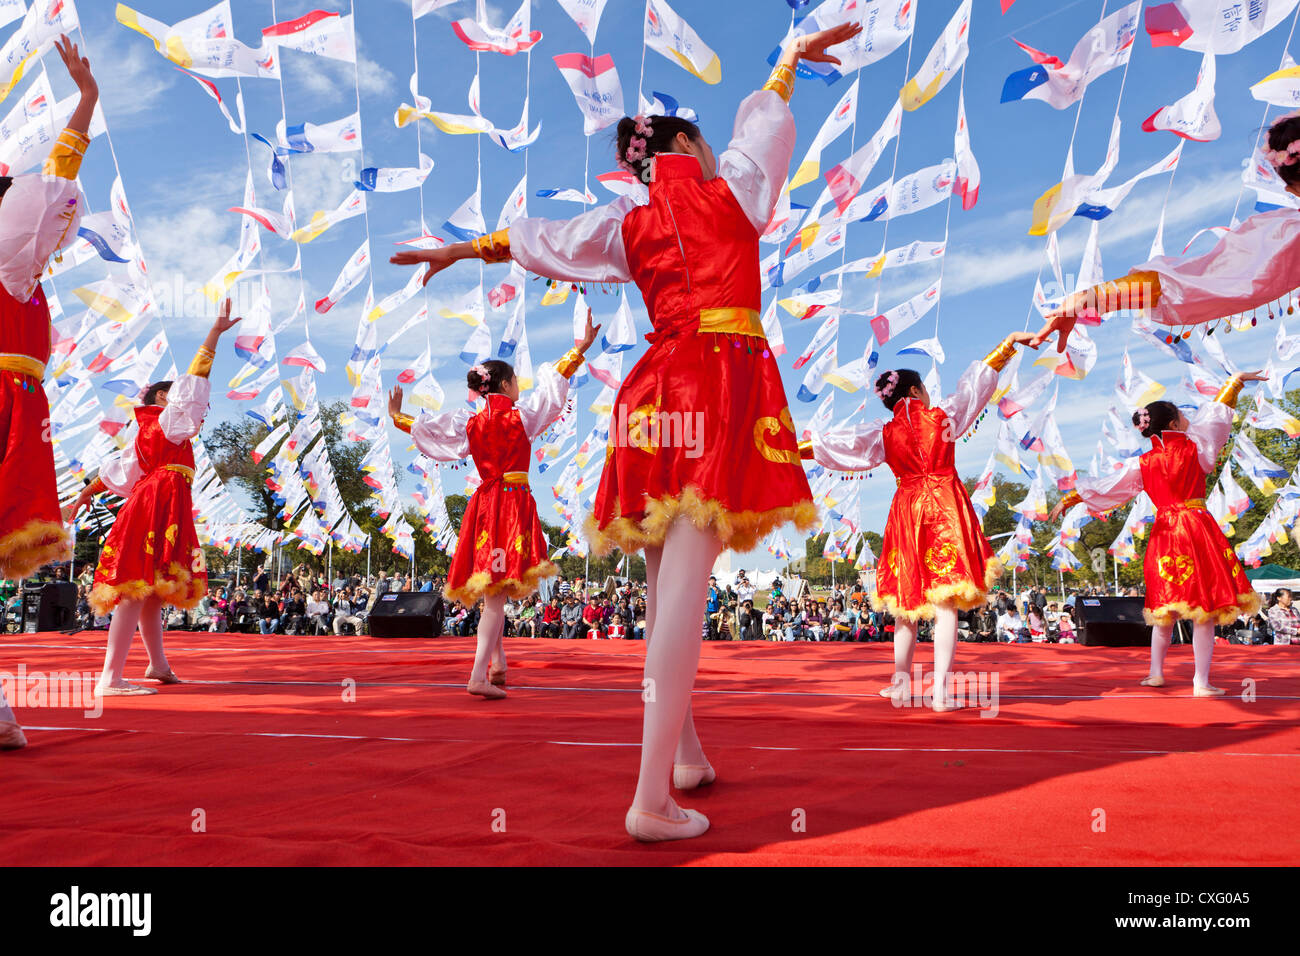 Chinese girls dancing on stage at a festival - USA - Stock Image